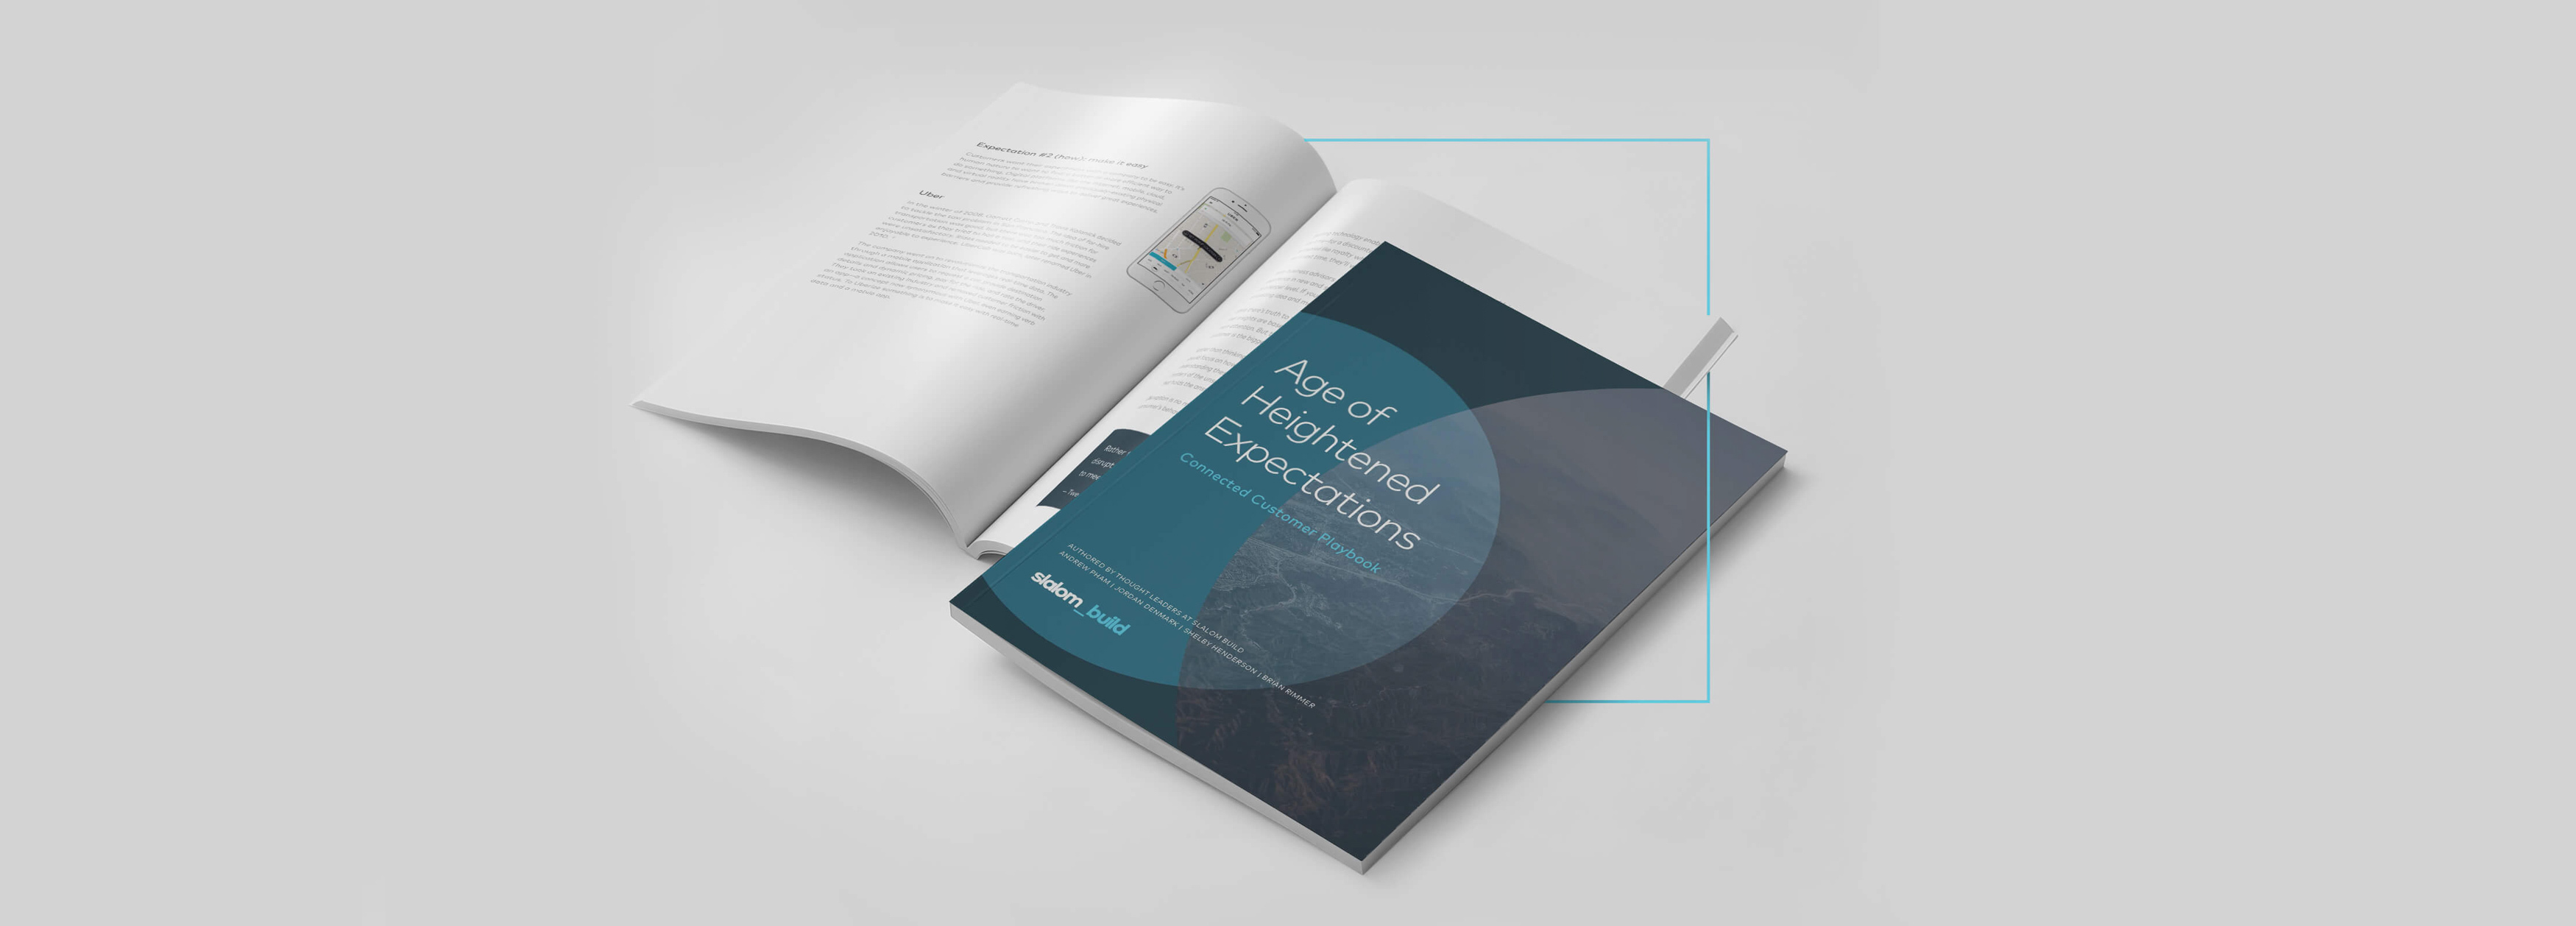 Printed Age of Heightened Expectations whitepaper.